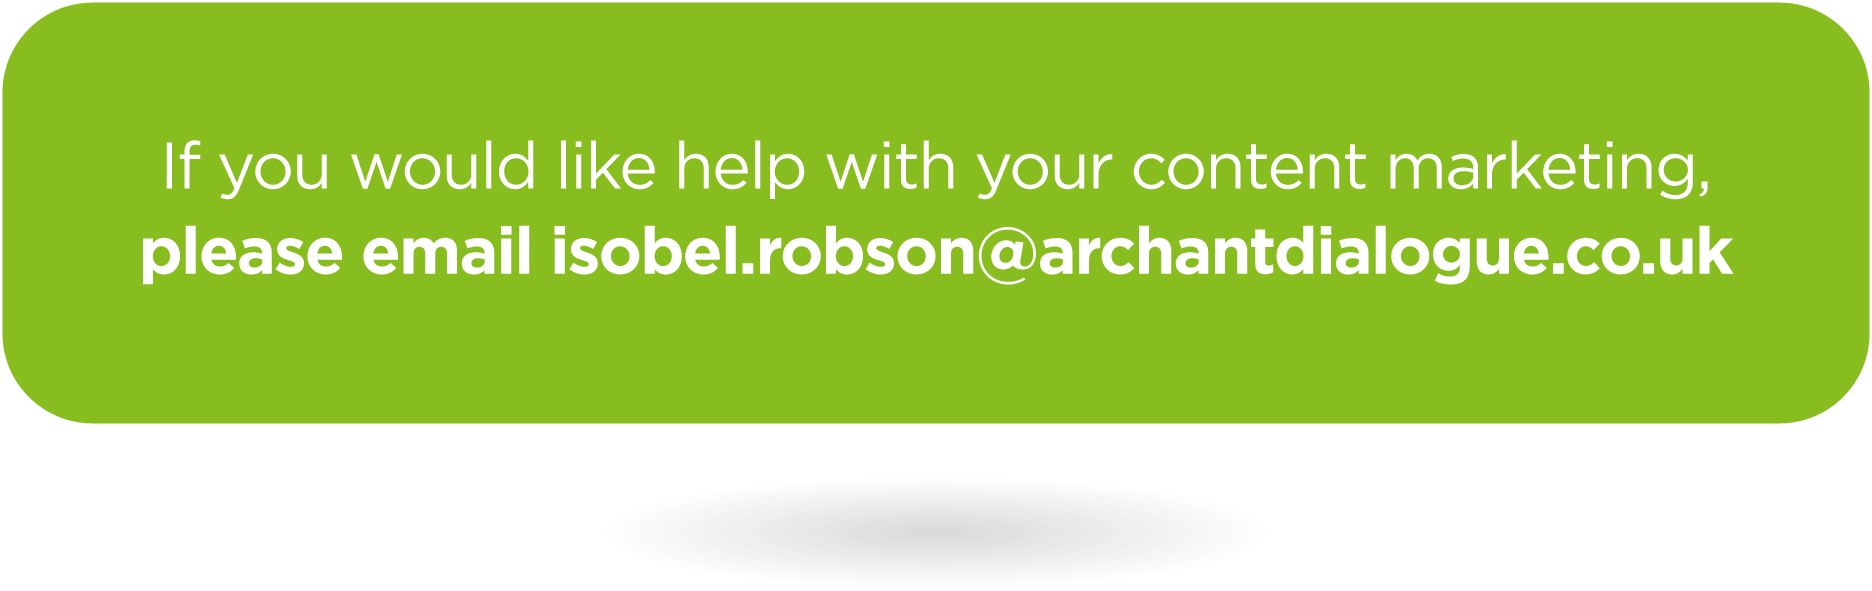 If you would like help with your content marketing, please email isobel.robson@archantdialogue.co.uk